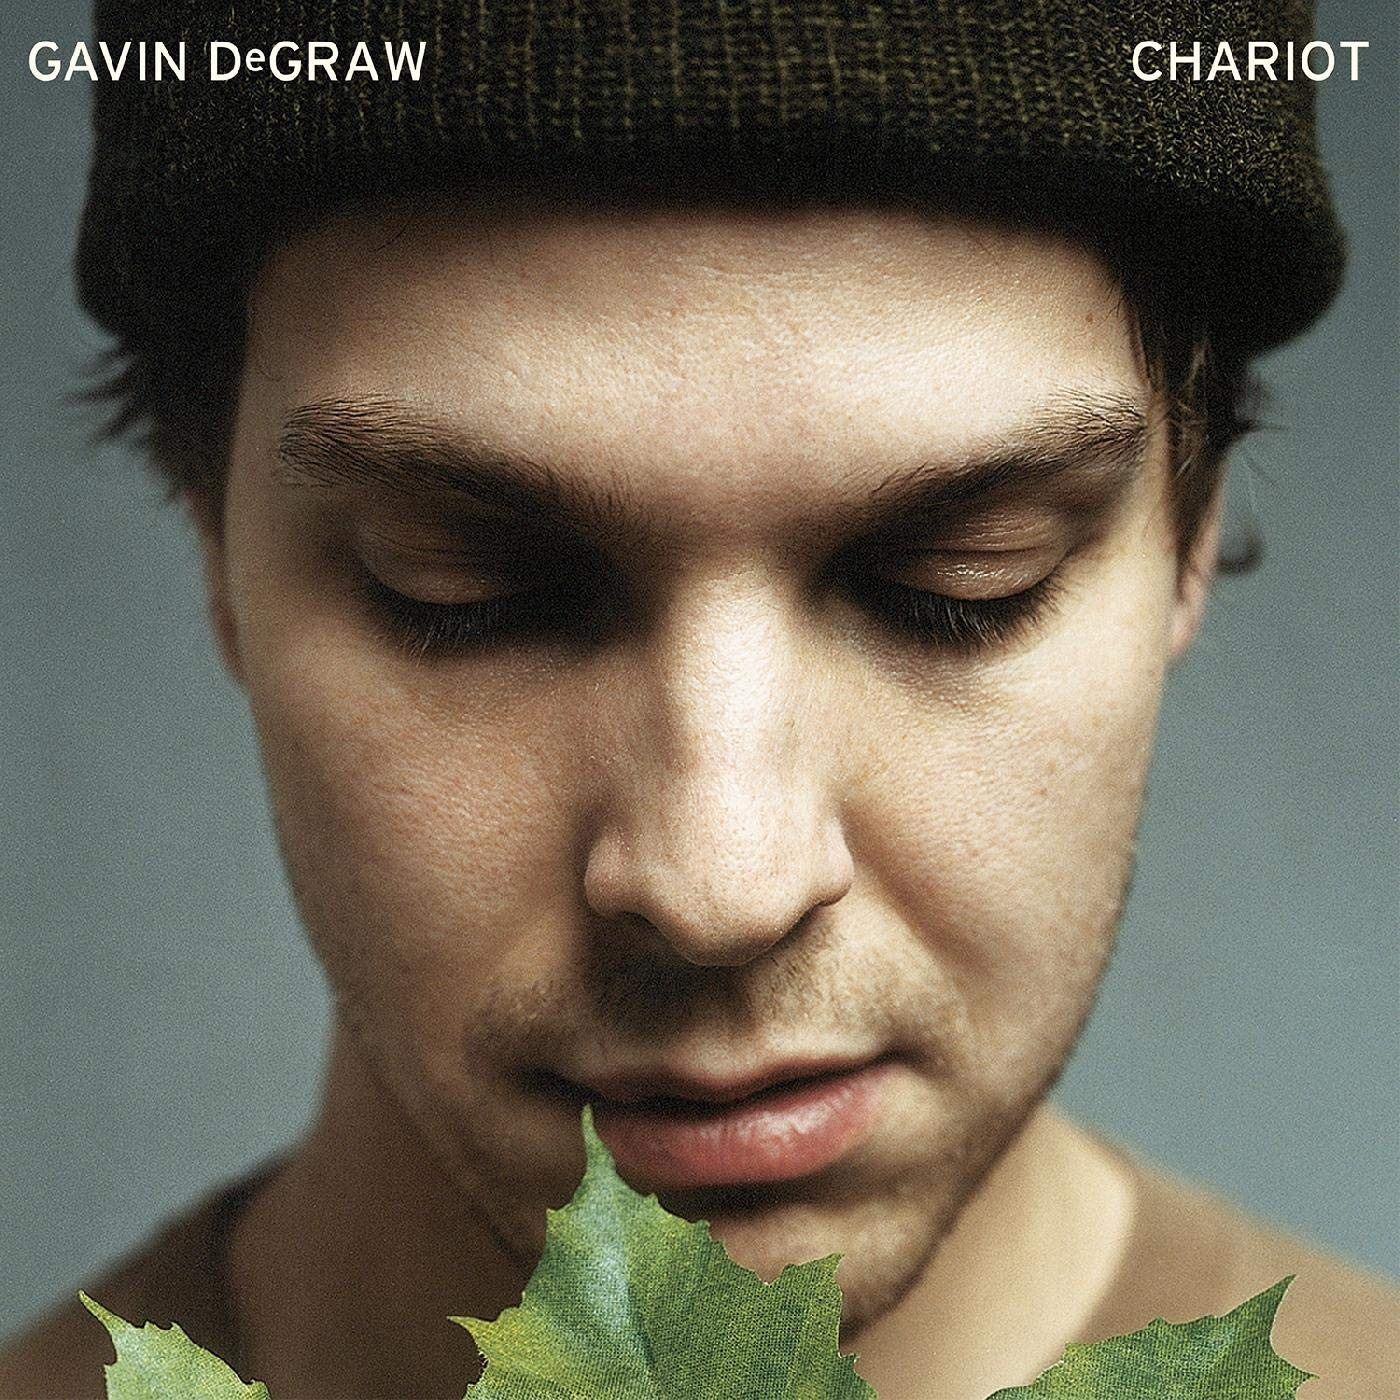 Gavin Degraw - Chariot (Green) LP